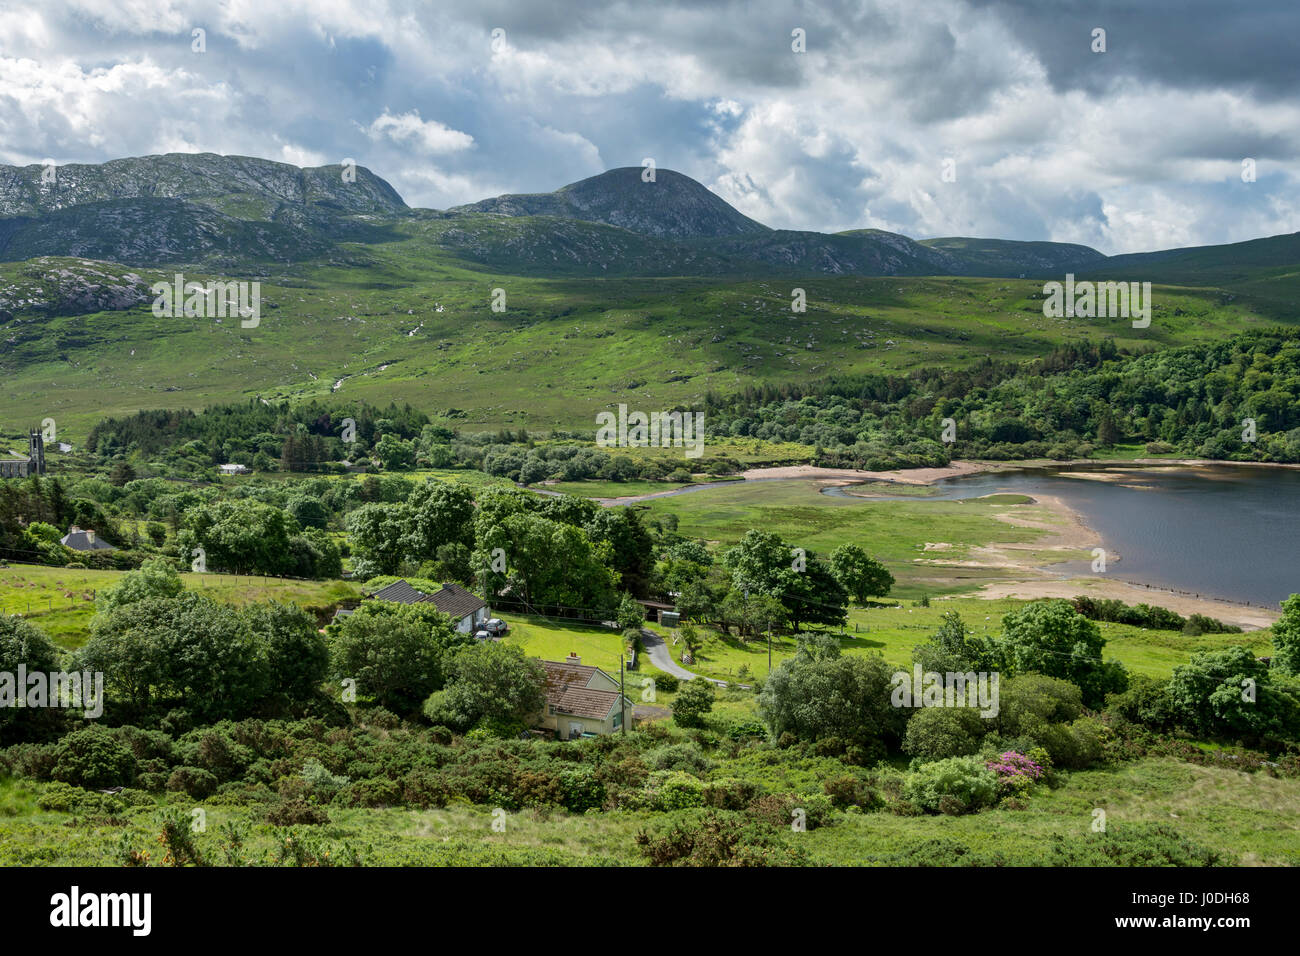 The Derryveagh Mountains over the head of Dunlewy Lough, County Donegal, Ireland - Stock Image